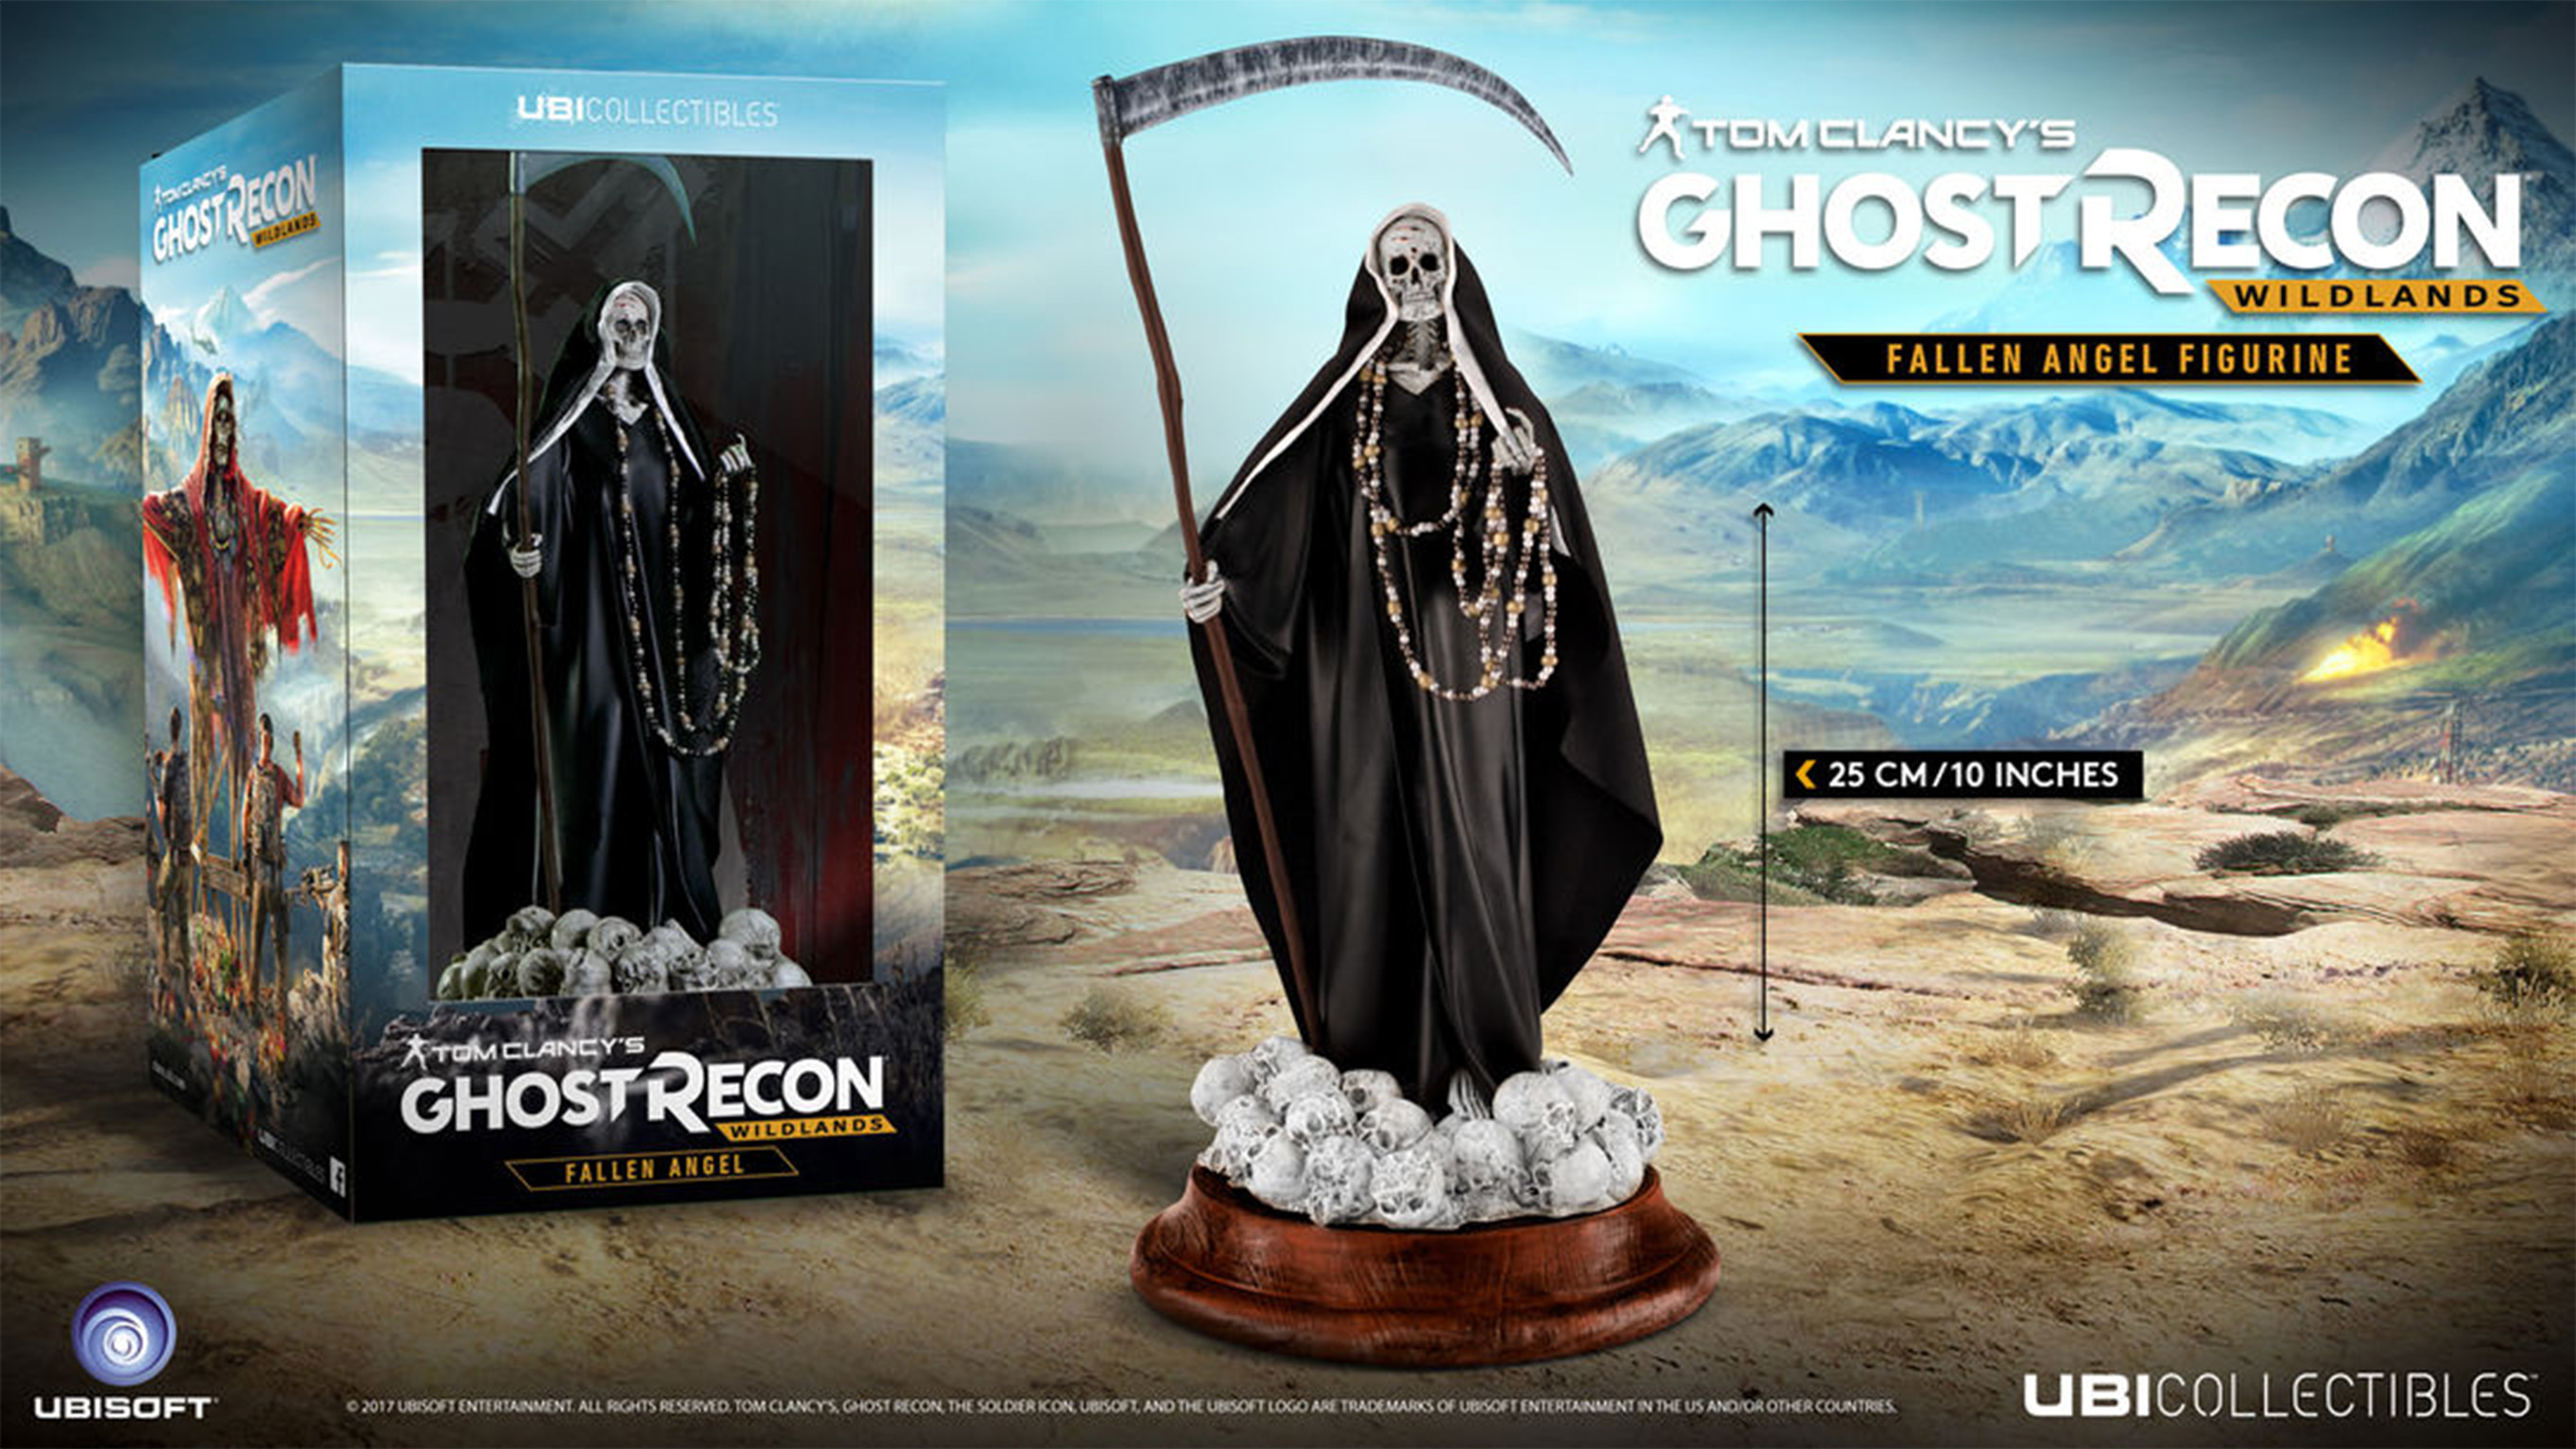 Tom Clancy's Ghost Recon Wildlands Fallen Angel Figurine